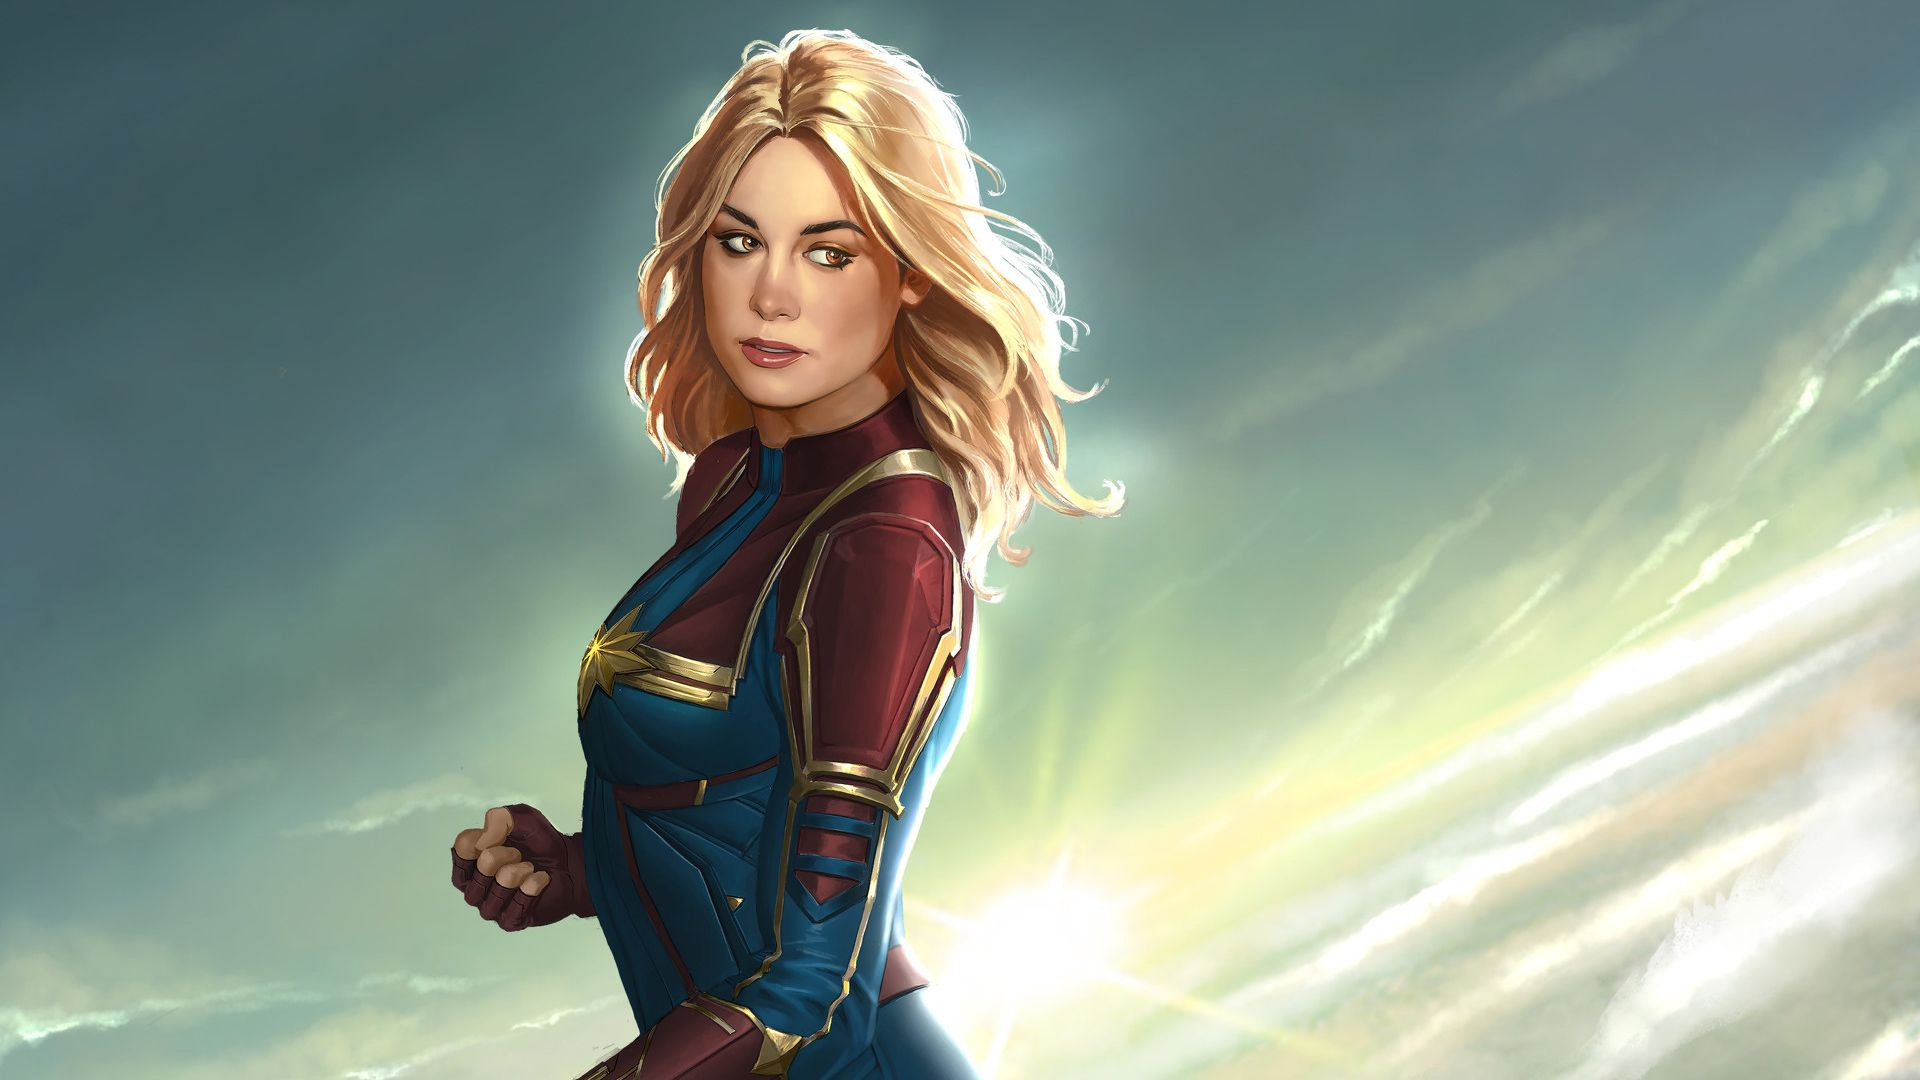 Captain Marvel New Artworks Movies Wallpapers Hd Wallpapers Digital Art Wallpapers Carol Danvers Wallpapers Captain Marvel Movie Wallpapers Marvel Wallpaper